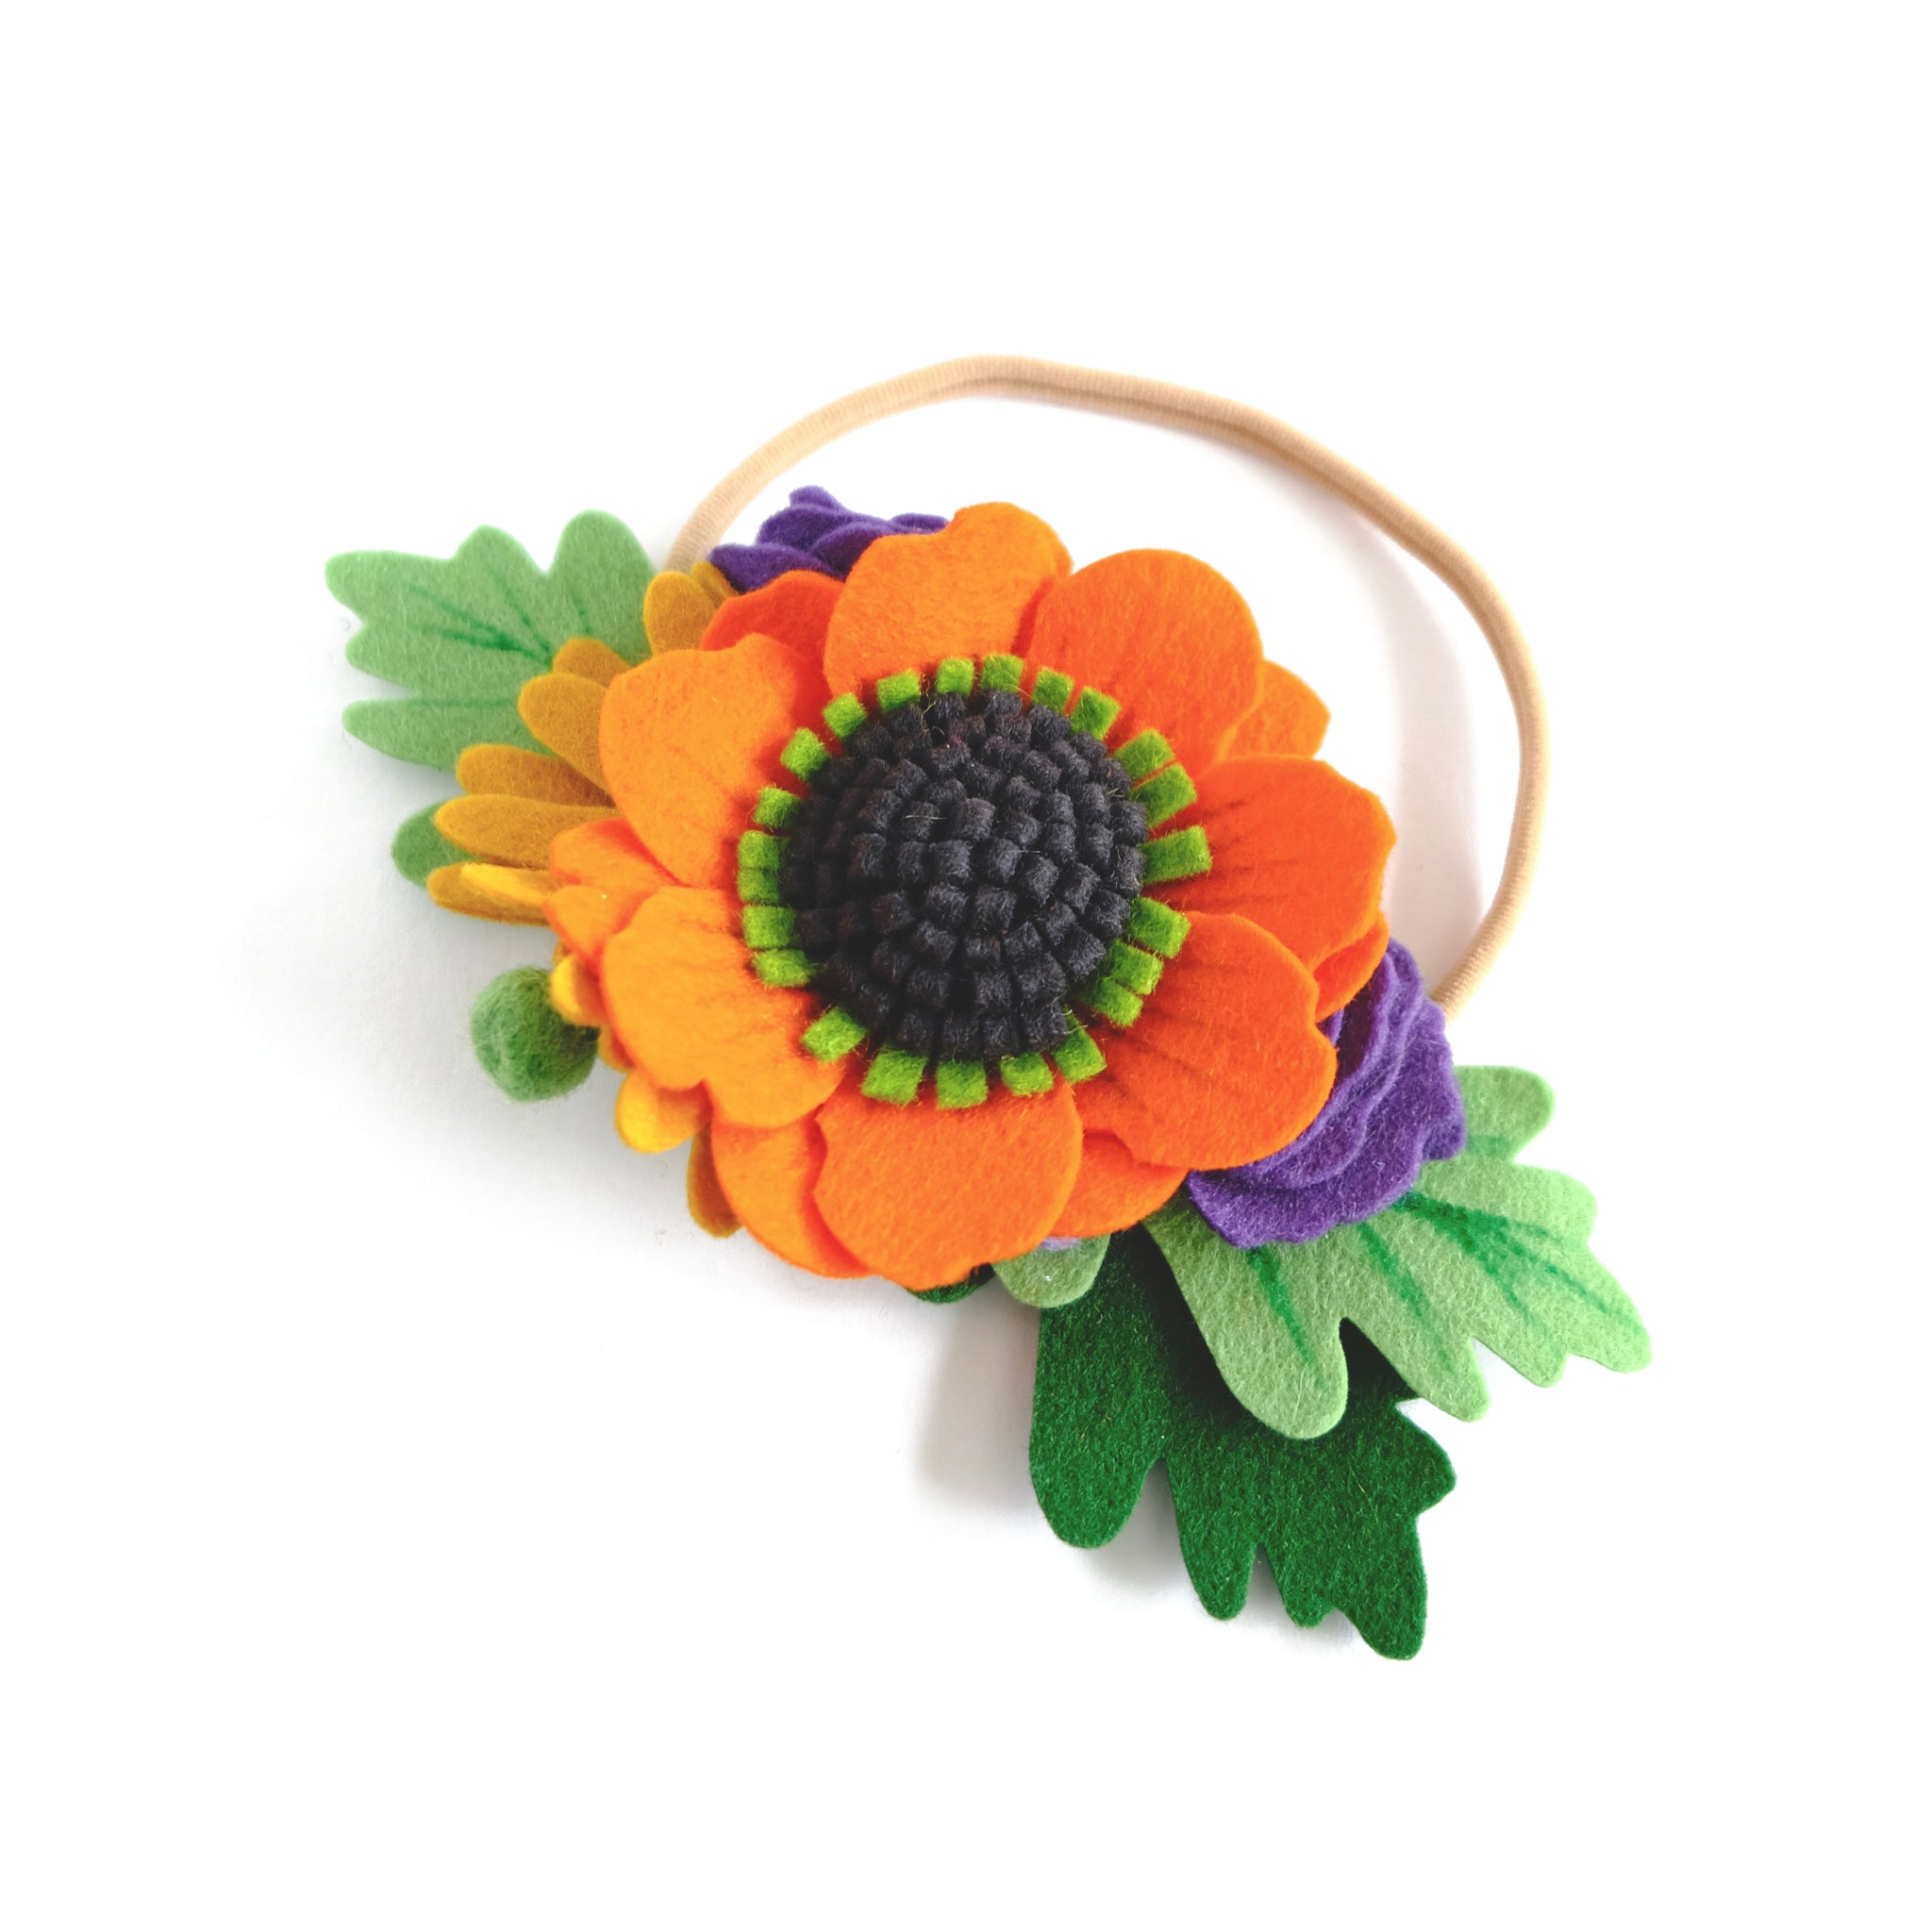 fall flower crown top view model with orange ... 1c880a99cf3